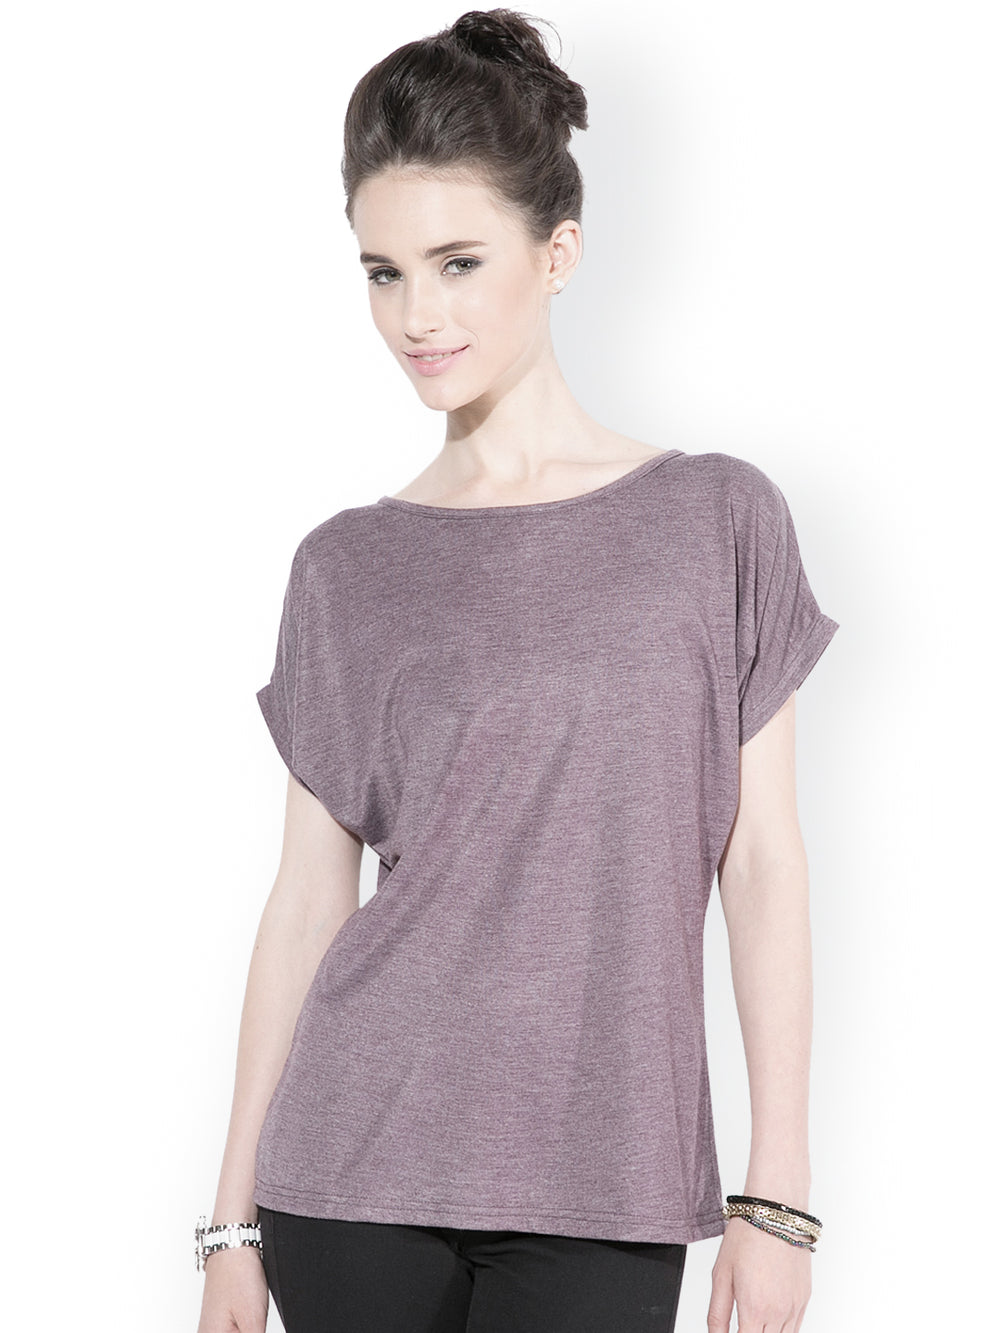 Besiva Purple Top